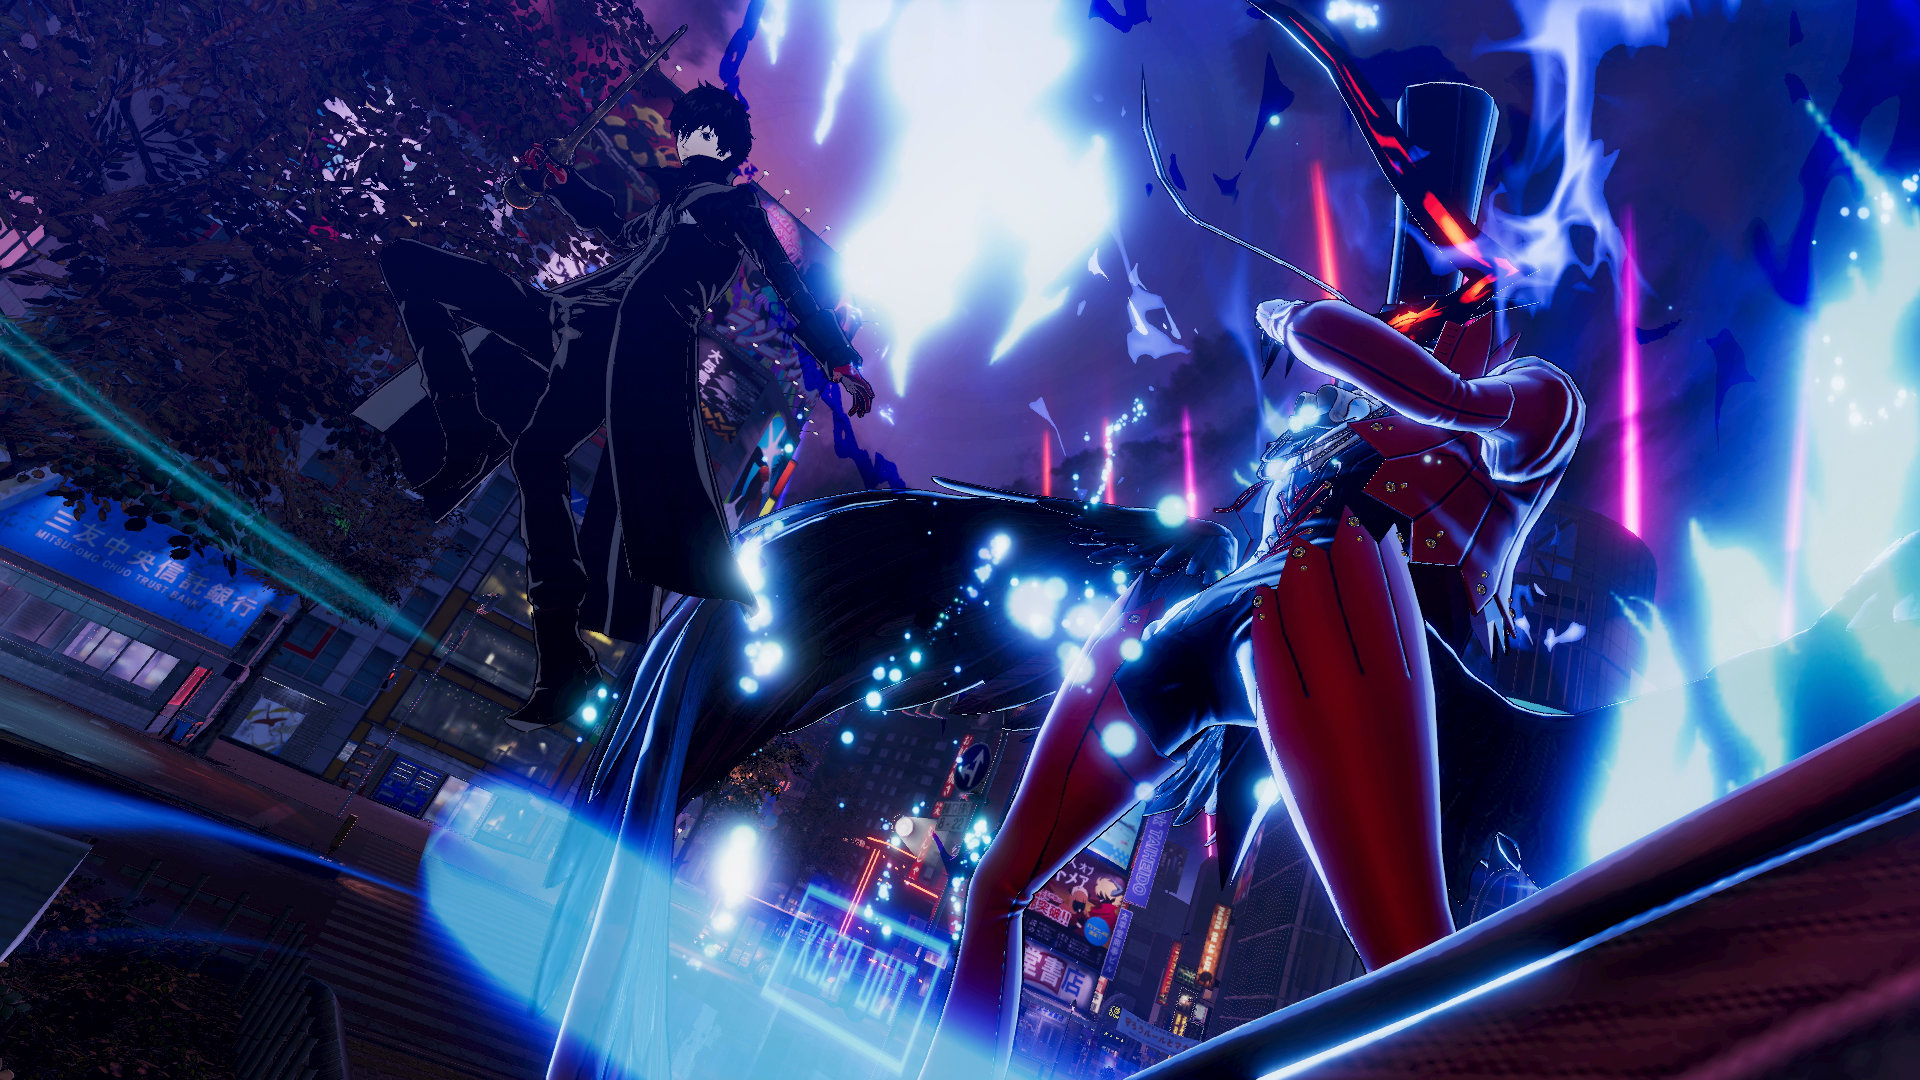 Persona 5 Strikers Screenshot of Joker leaping into action as his Persona stands ready behind him against a darkened city backdrop.